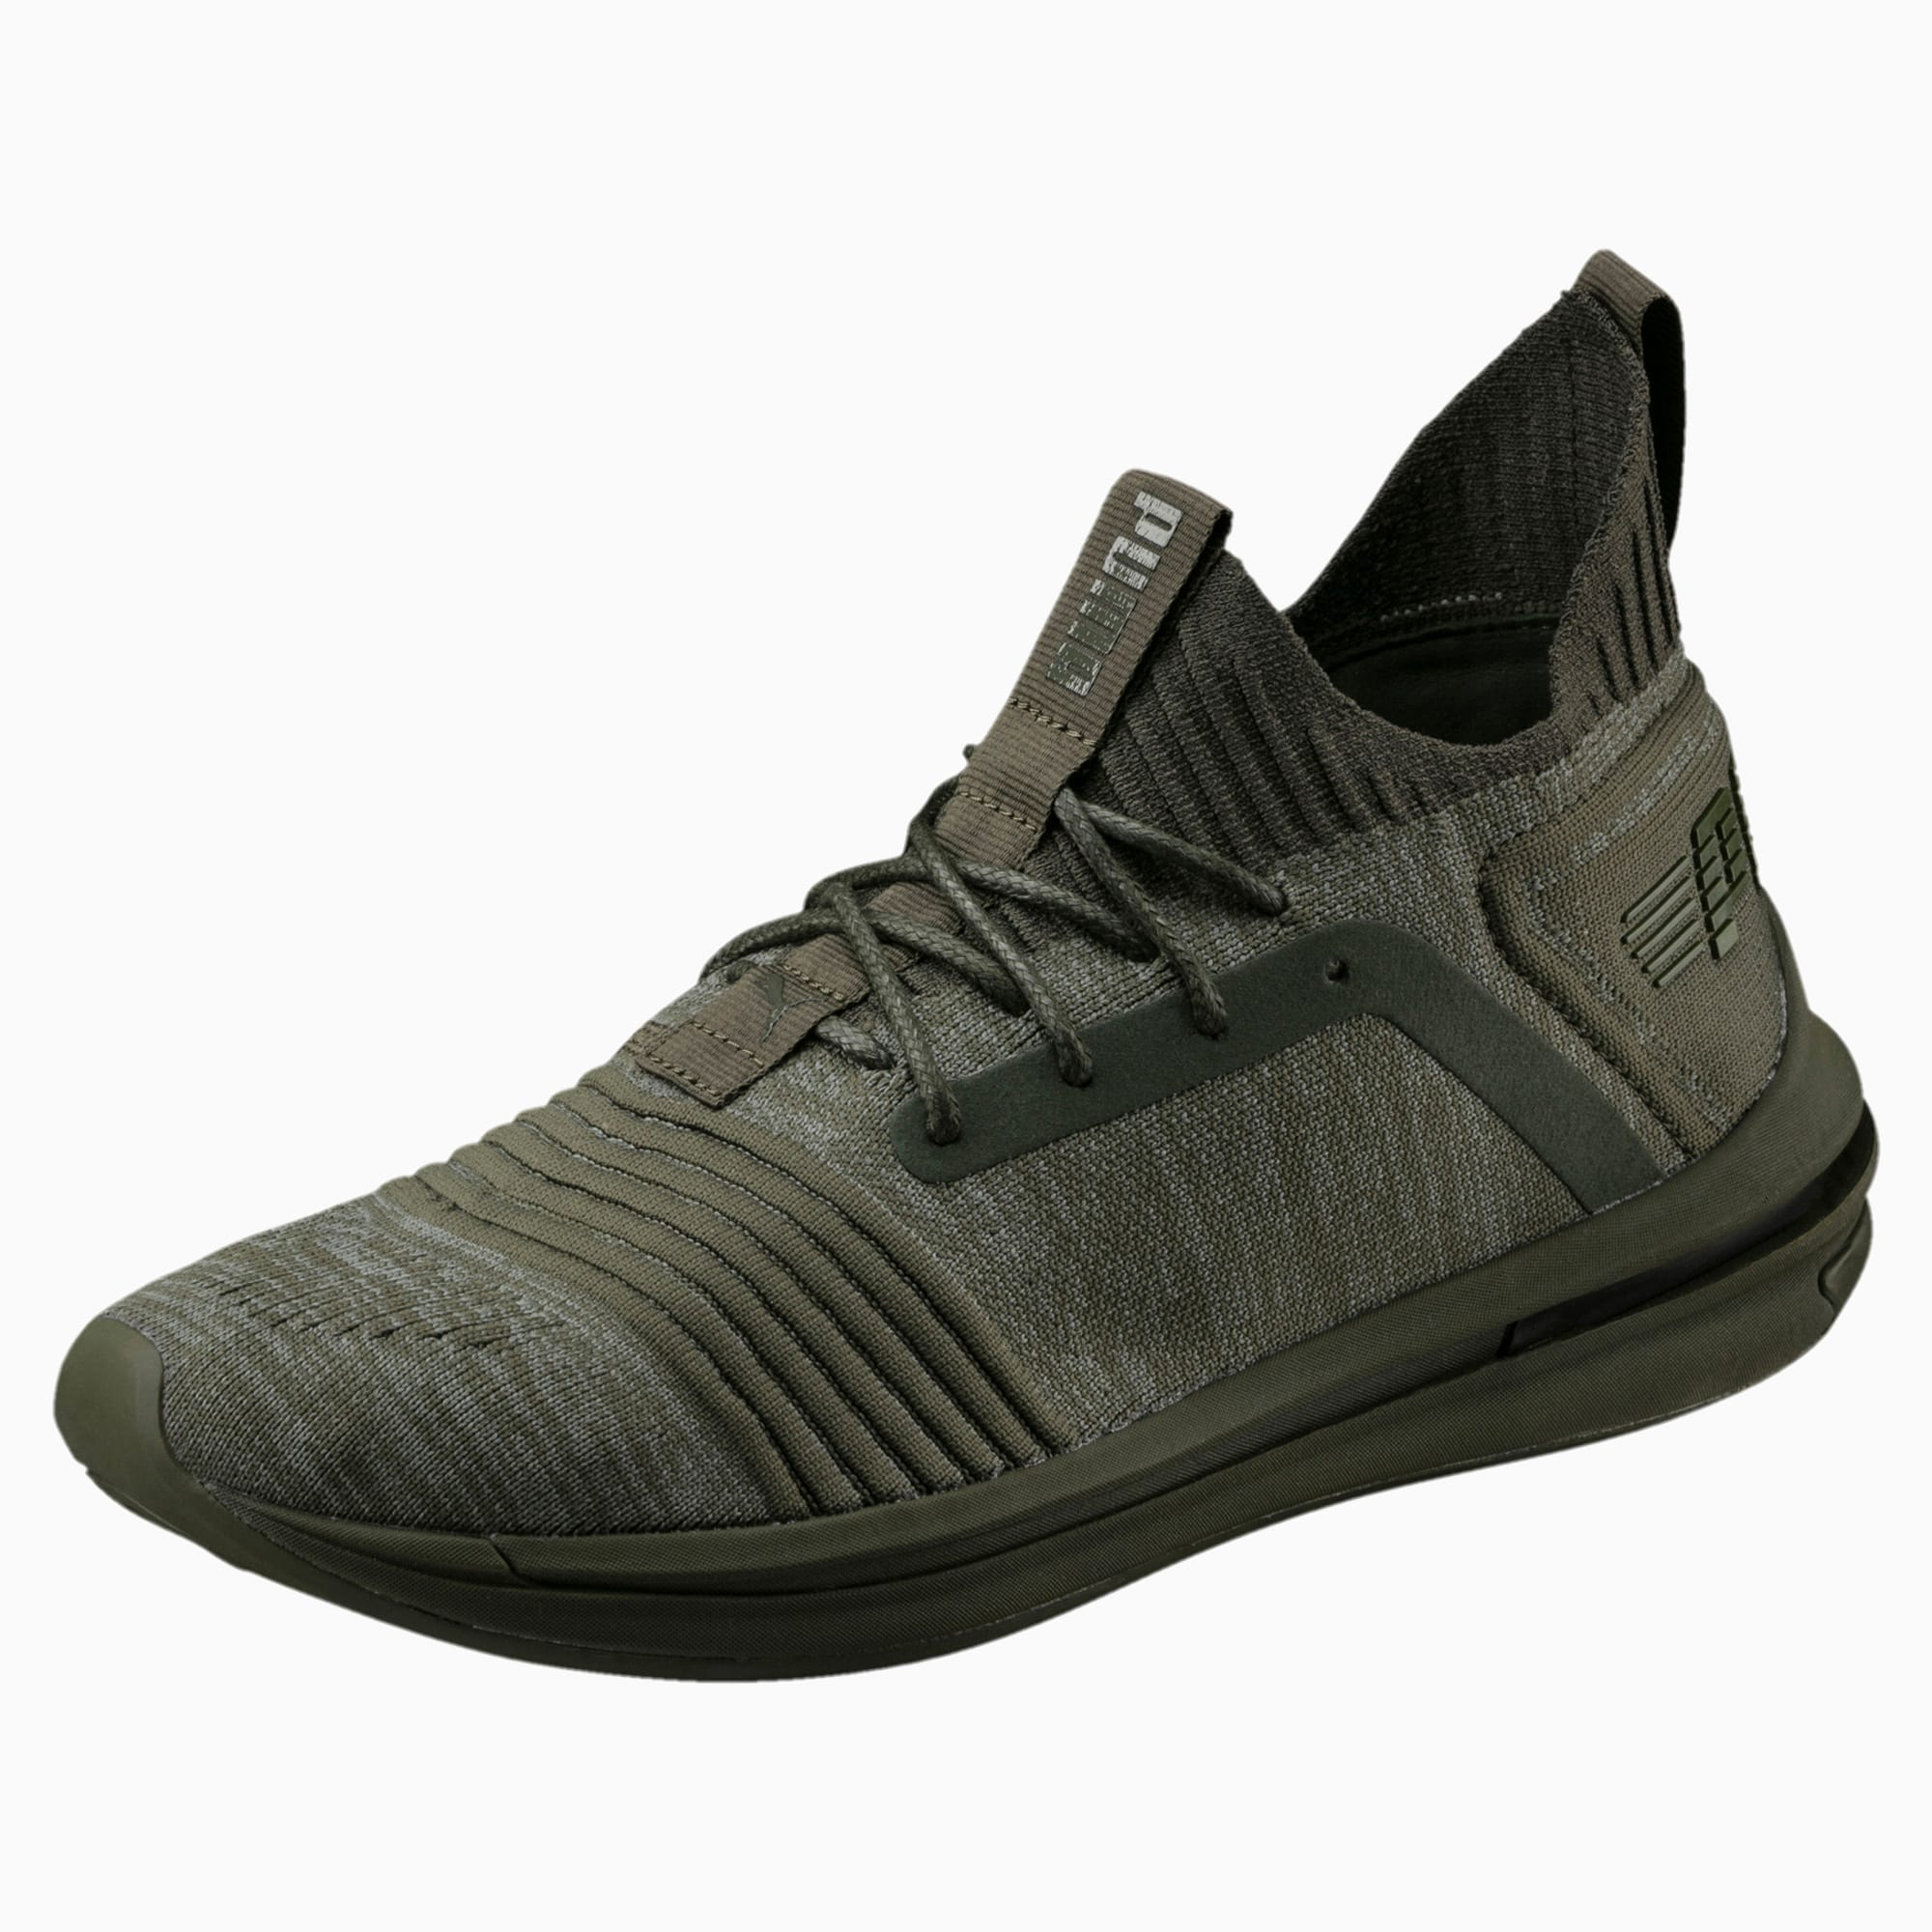 IGNITE Limitless SR evoKNIT Men's Sneakers